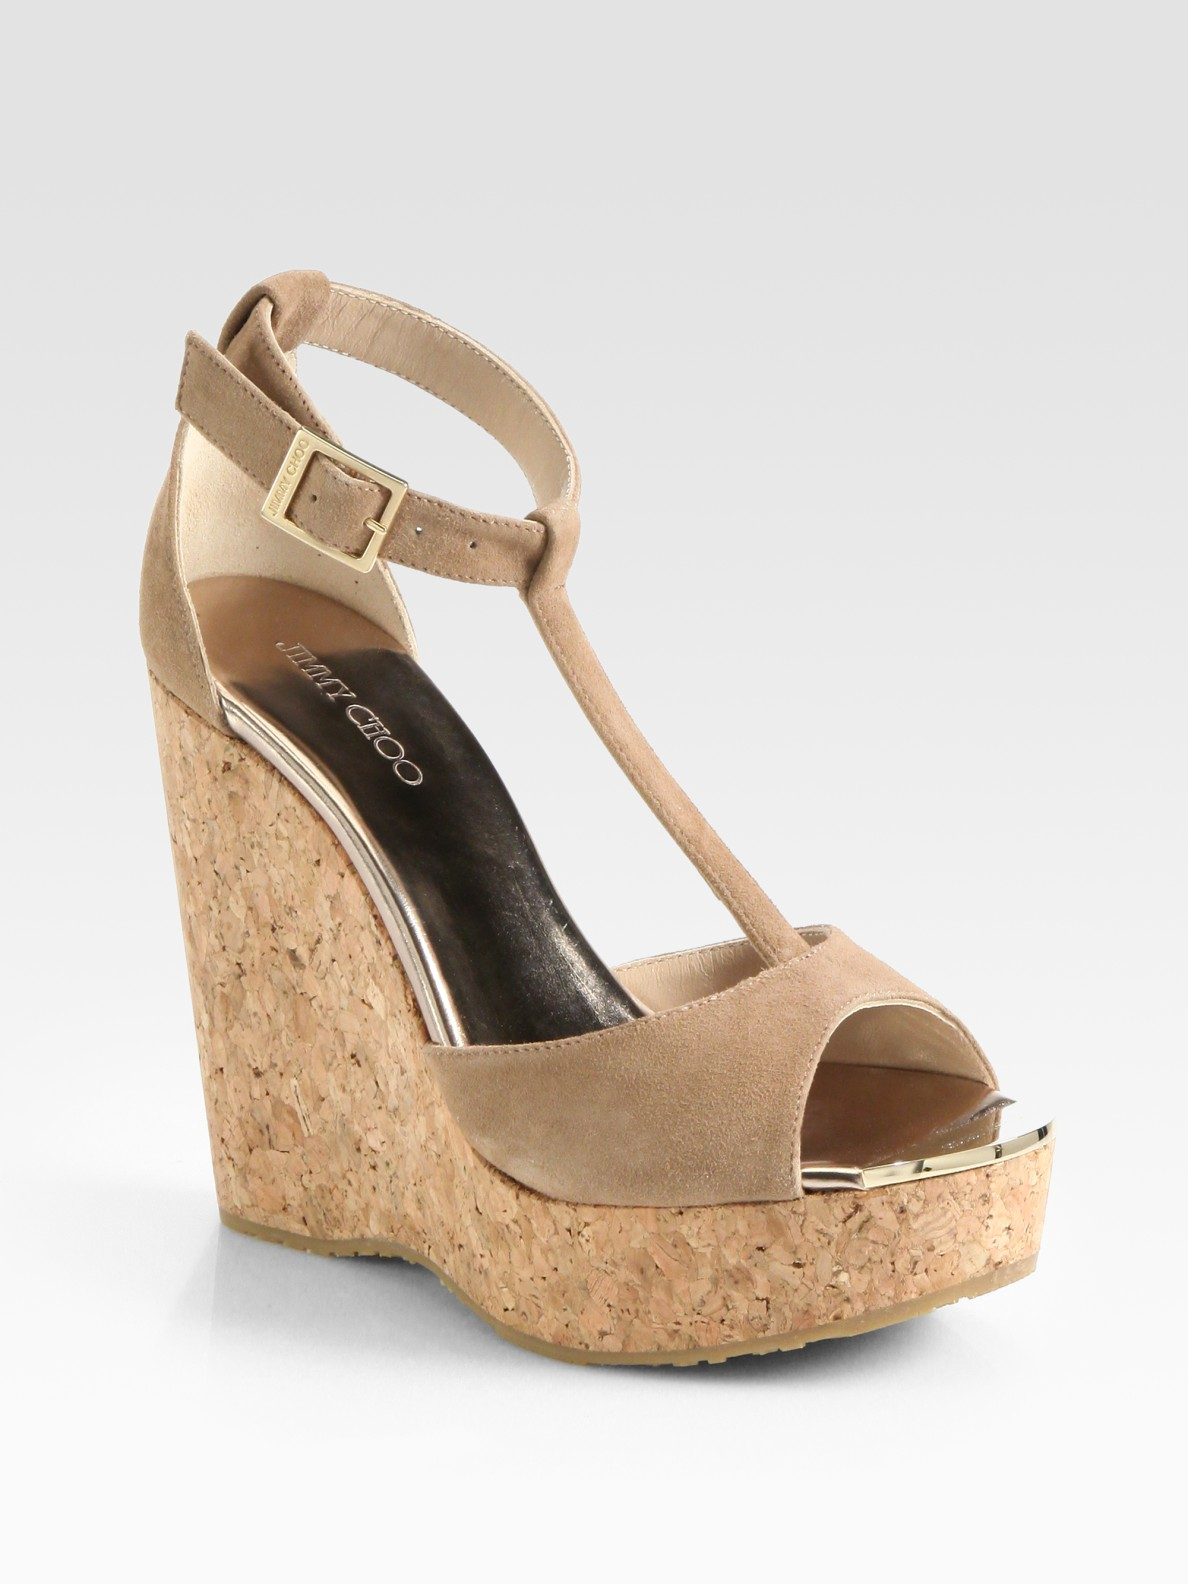 57fbded3a0d442 Lyst - Jimmy Choo Pela Suede Tstrap Cork Wedge Sandals in Natural